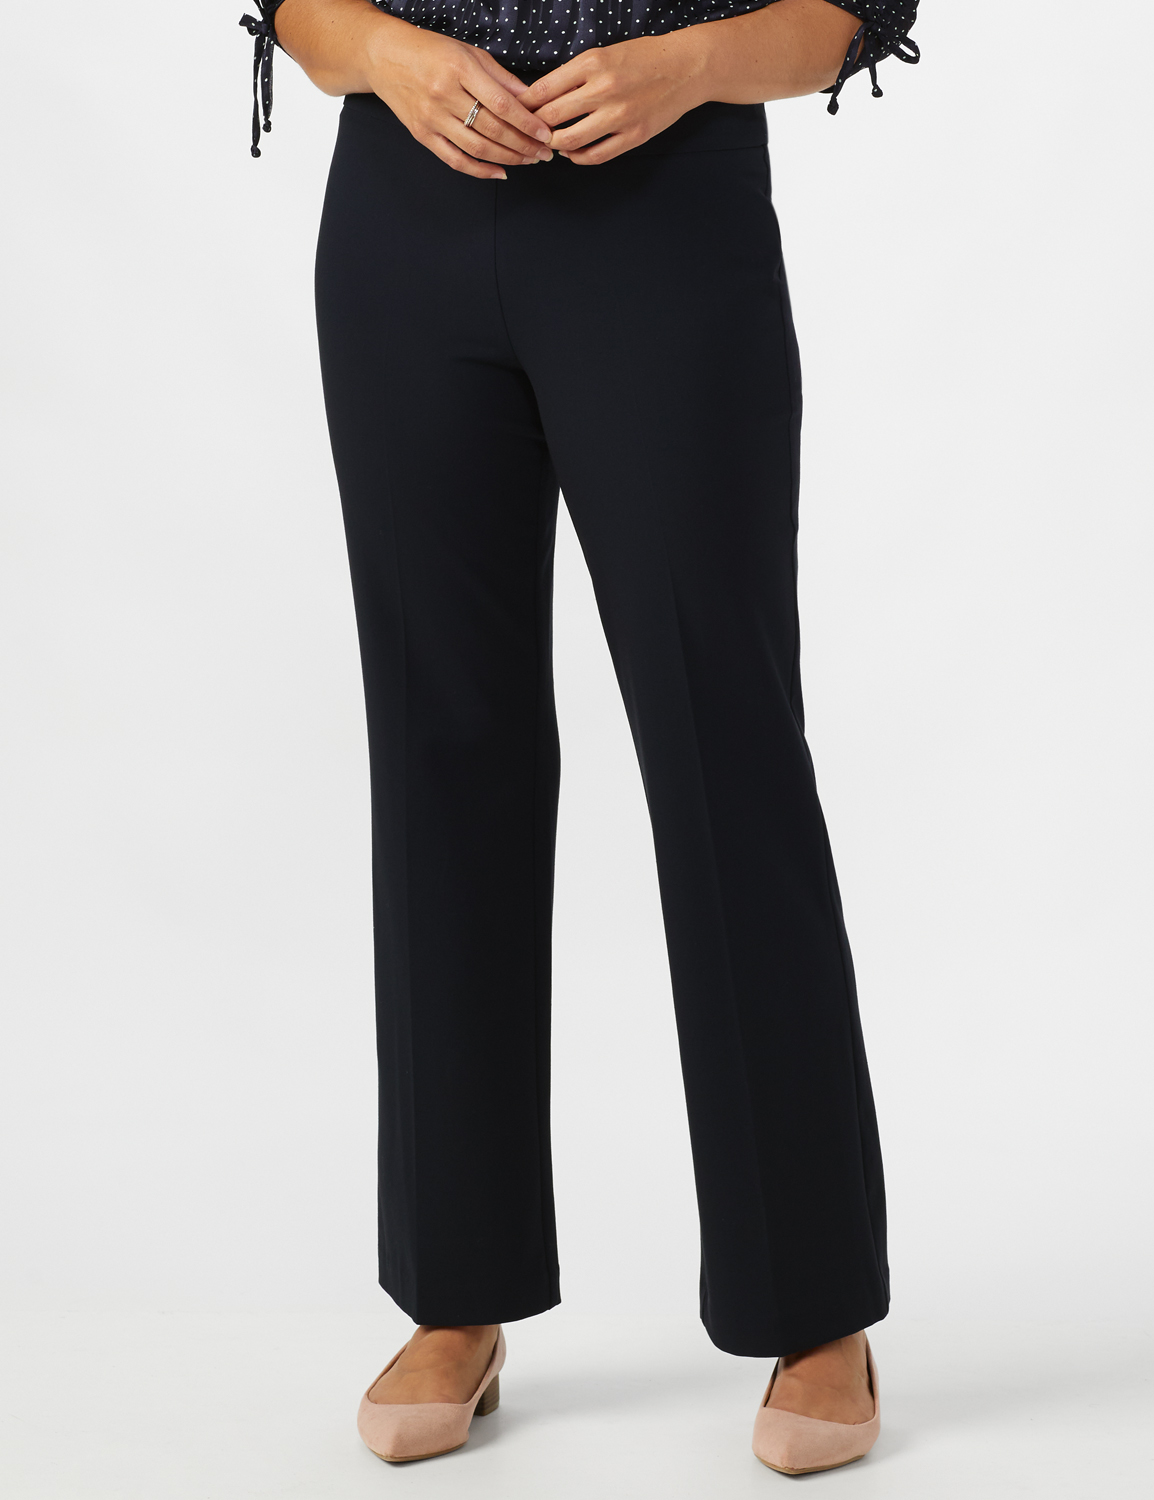 Secret Agent Tummy Control Pants - Average Length -Navy - Front